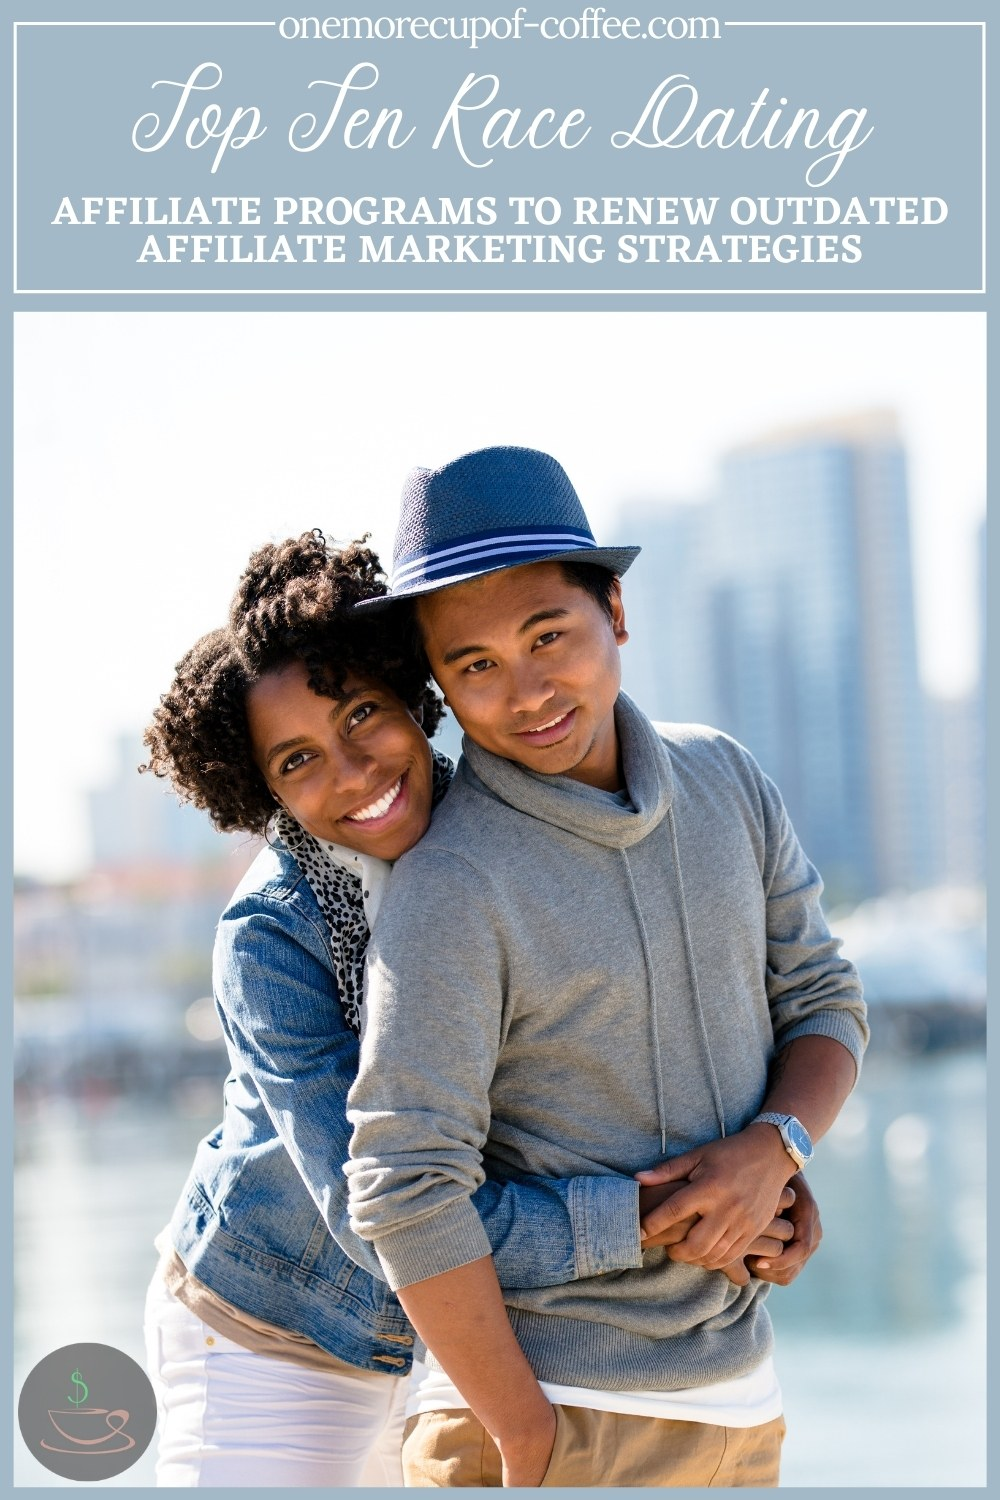 smiling interracial couple, the woman hugging the man from the back, with text at the top